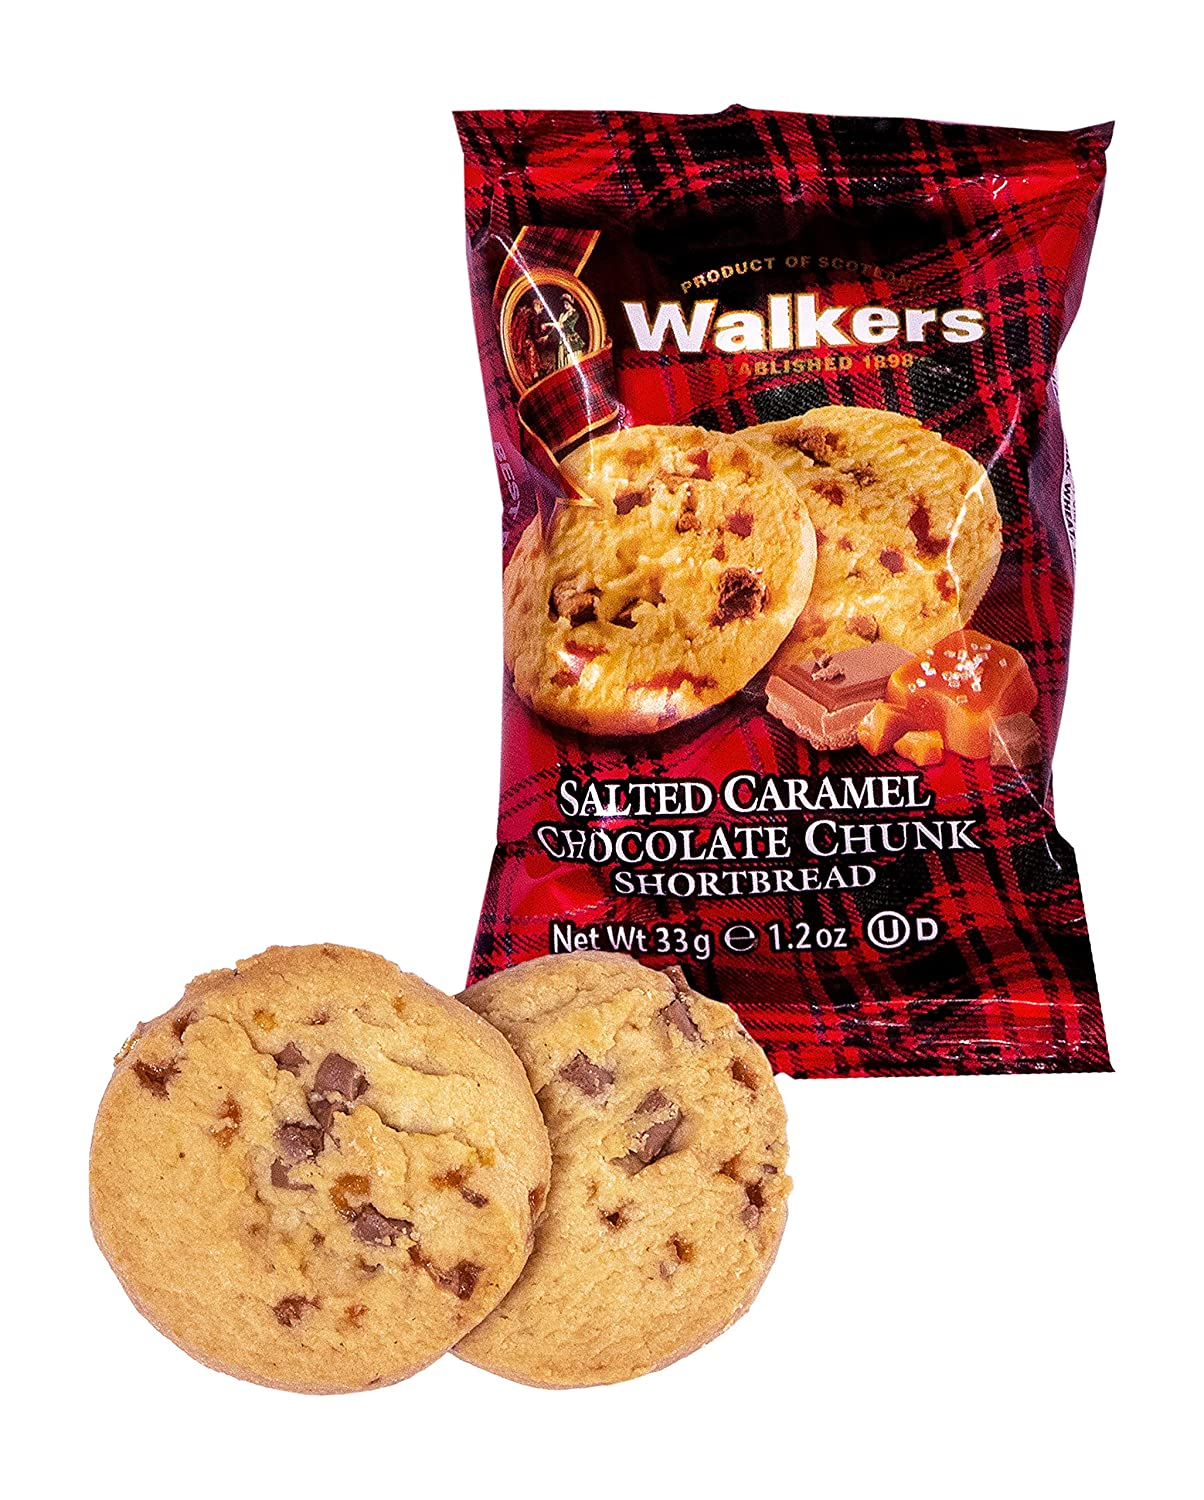 2 Pack Salted Caramel & Chocolate Chunk Shortbread – 20 ct.